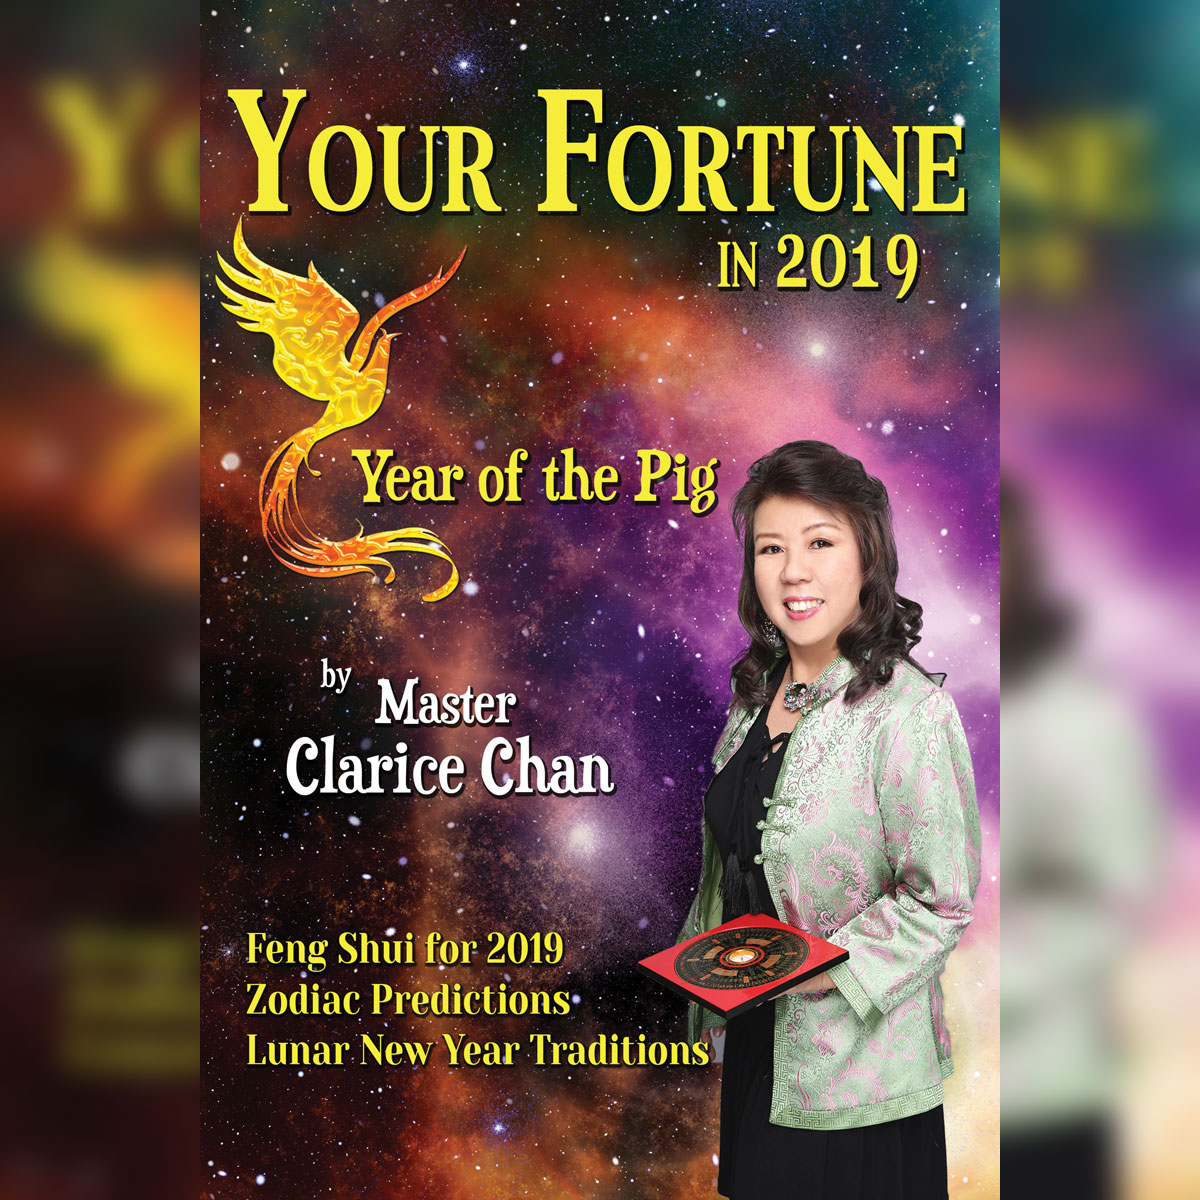 Your Fortune in 2019